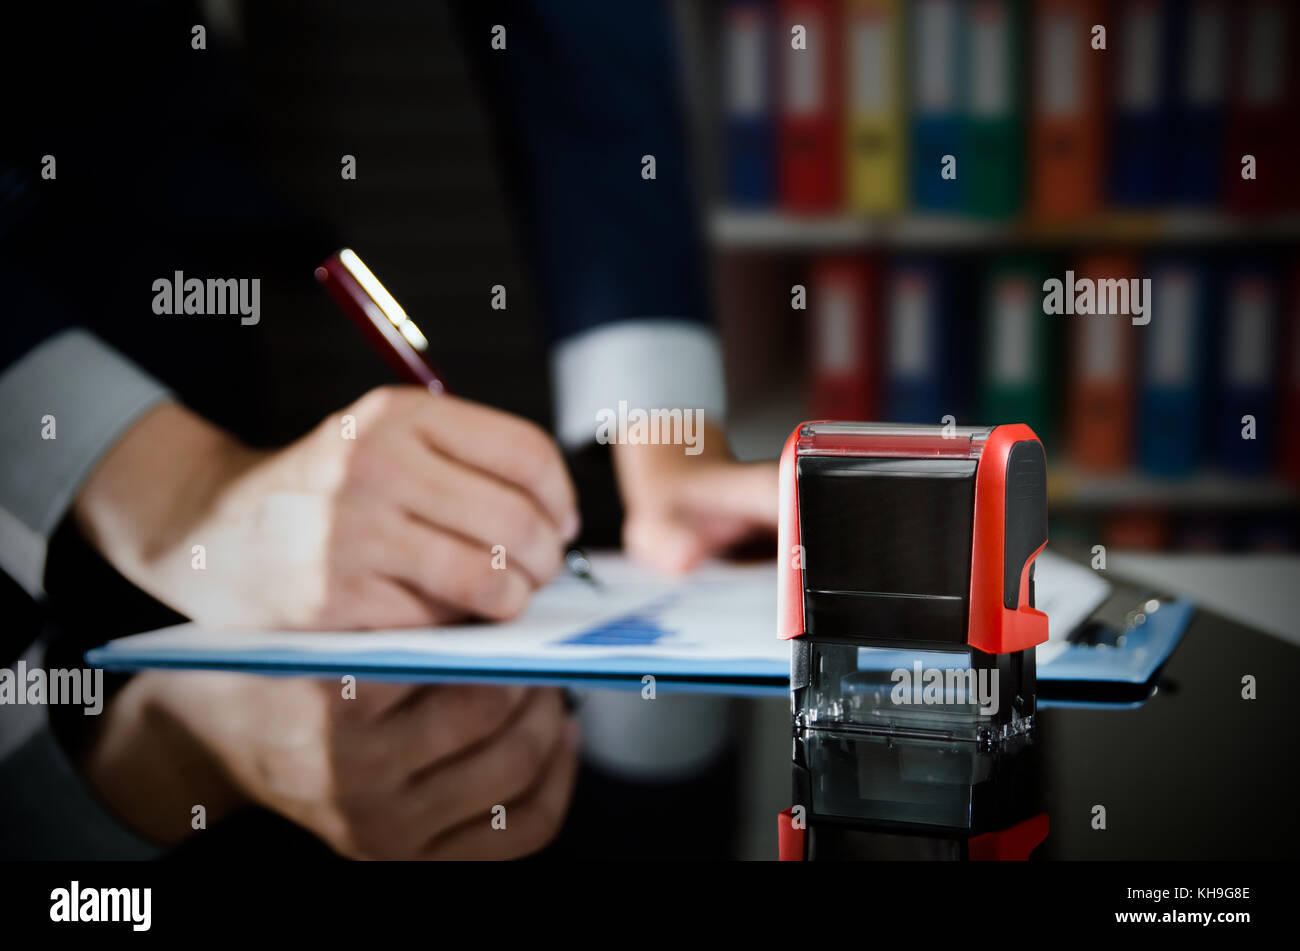 Businessman working with documents. Automatic stamp in foreground. accountant analysis working budget sign accounting - Stock Photo